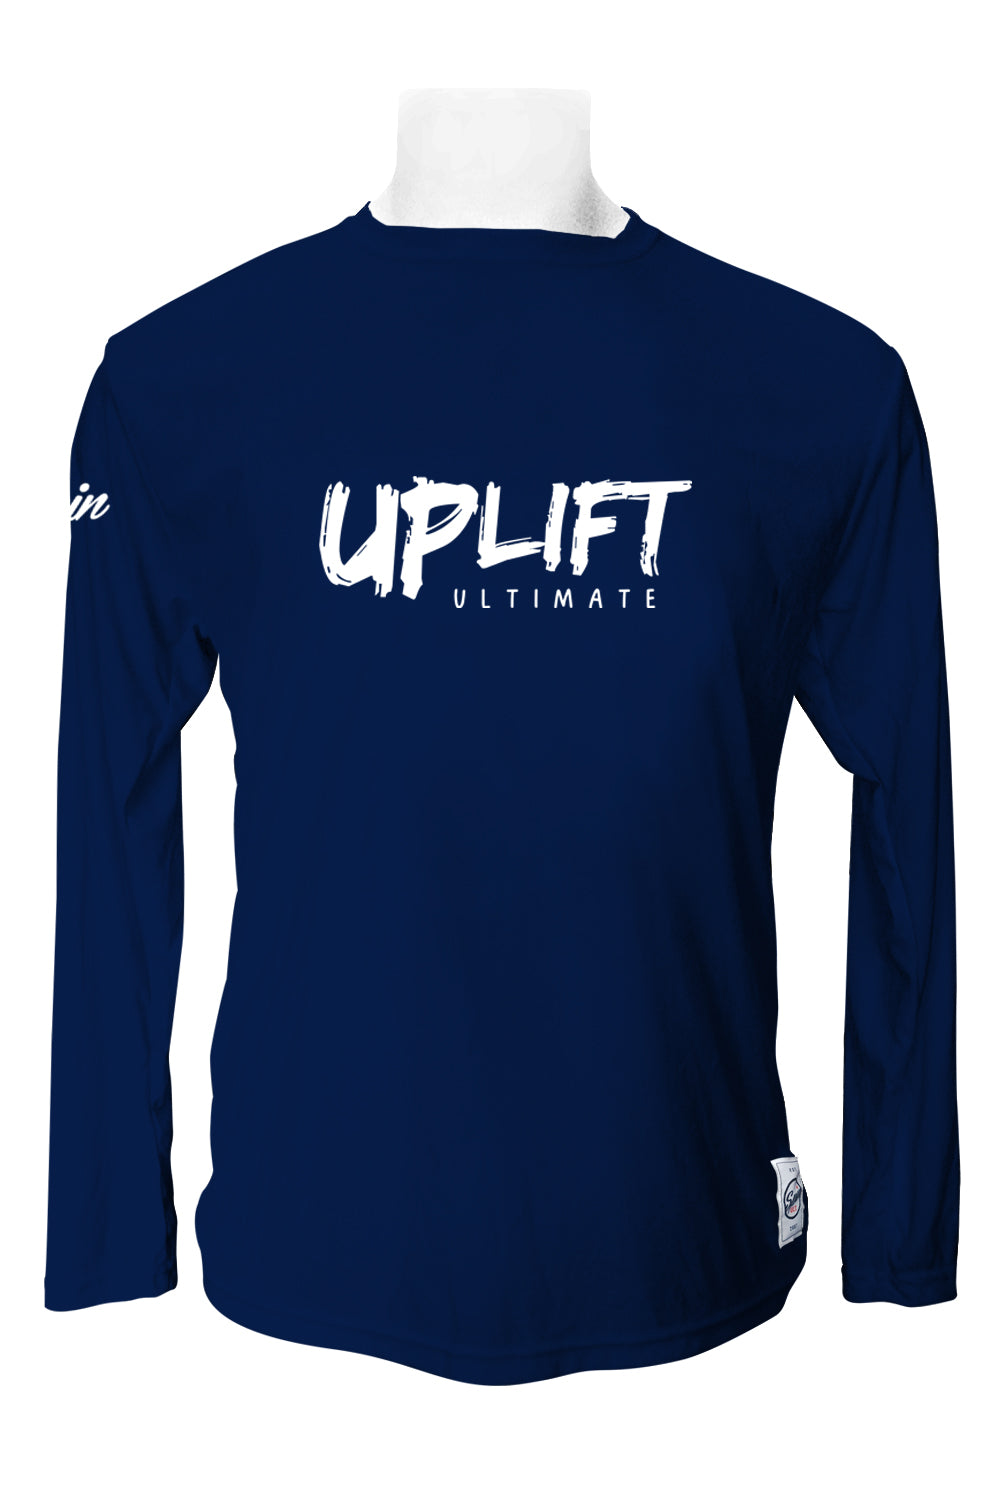 Uplift Ultimate Long Sleeve Jersey (Navy)